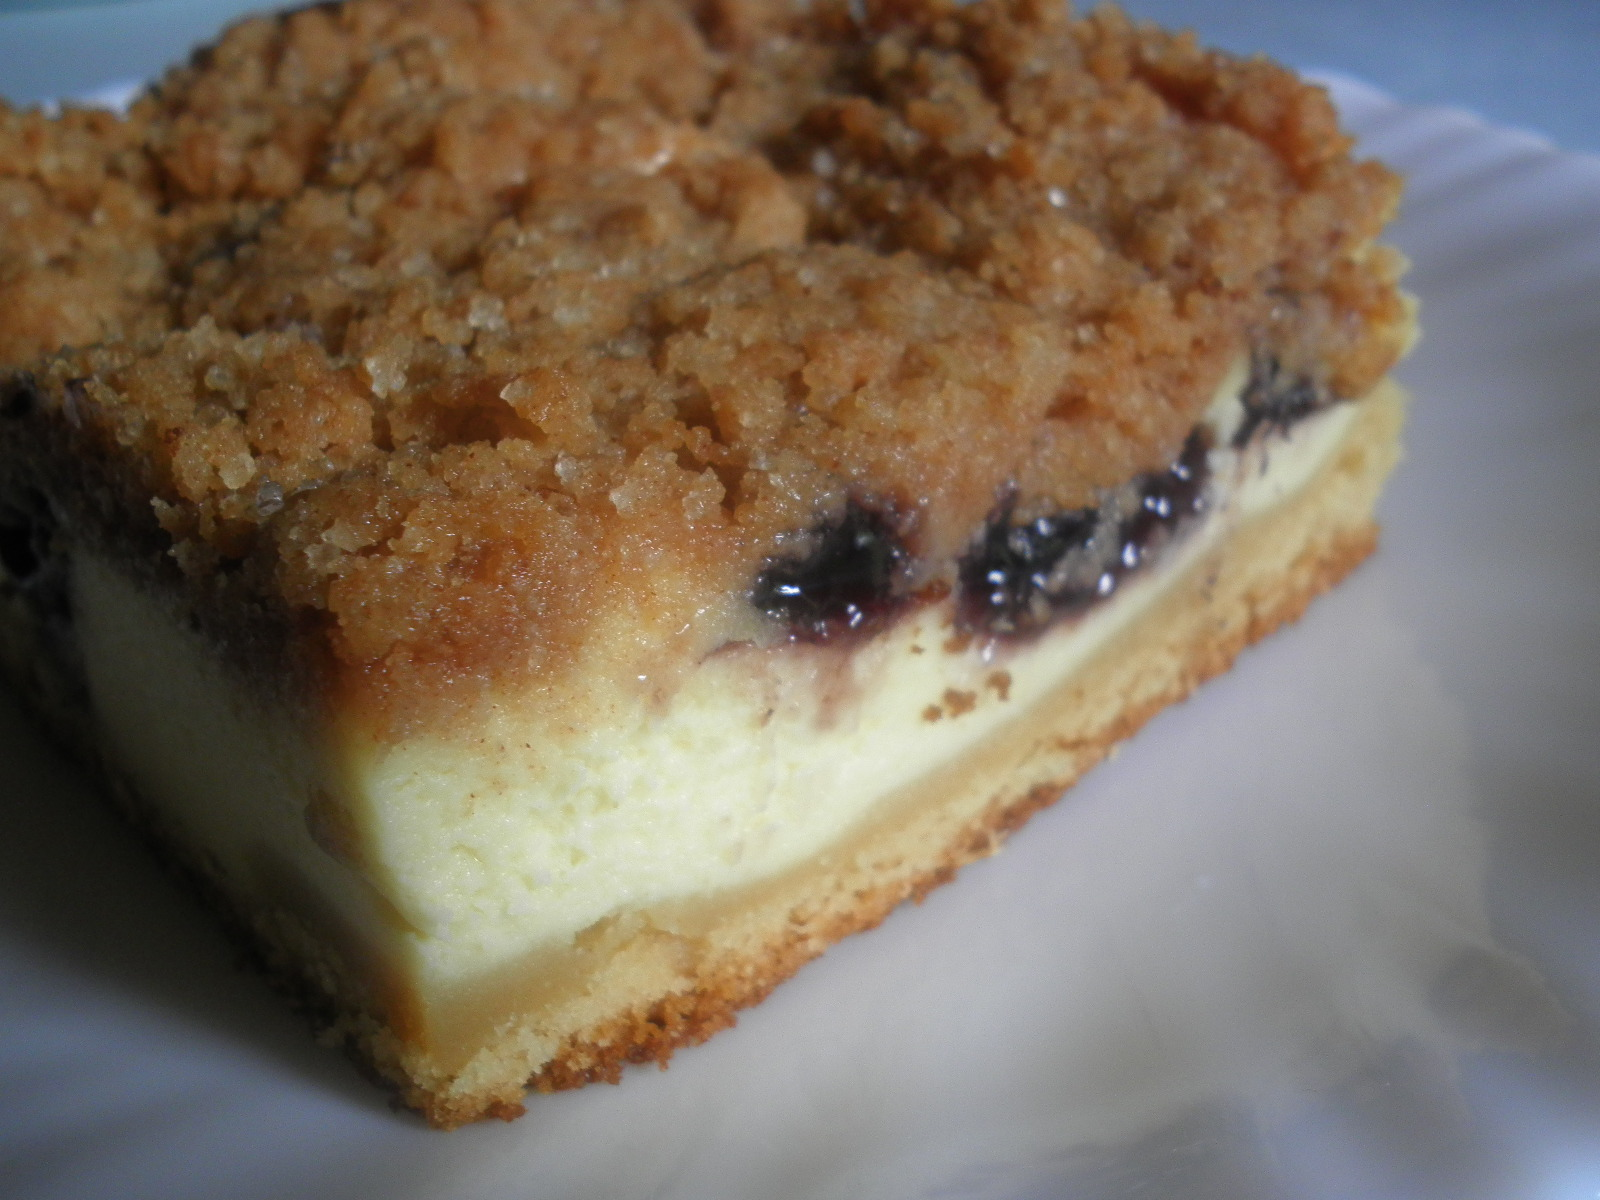 blueberry cream cheese coffee cake every crumb blueberry cheese coffee cake 1970